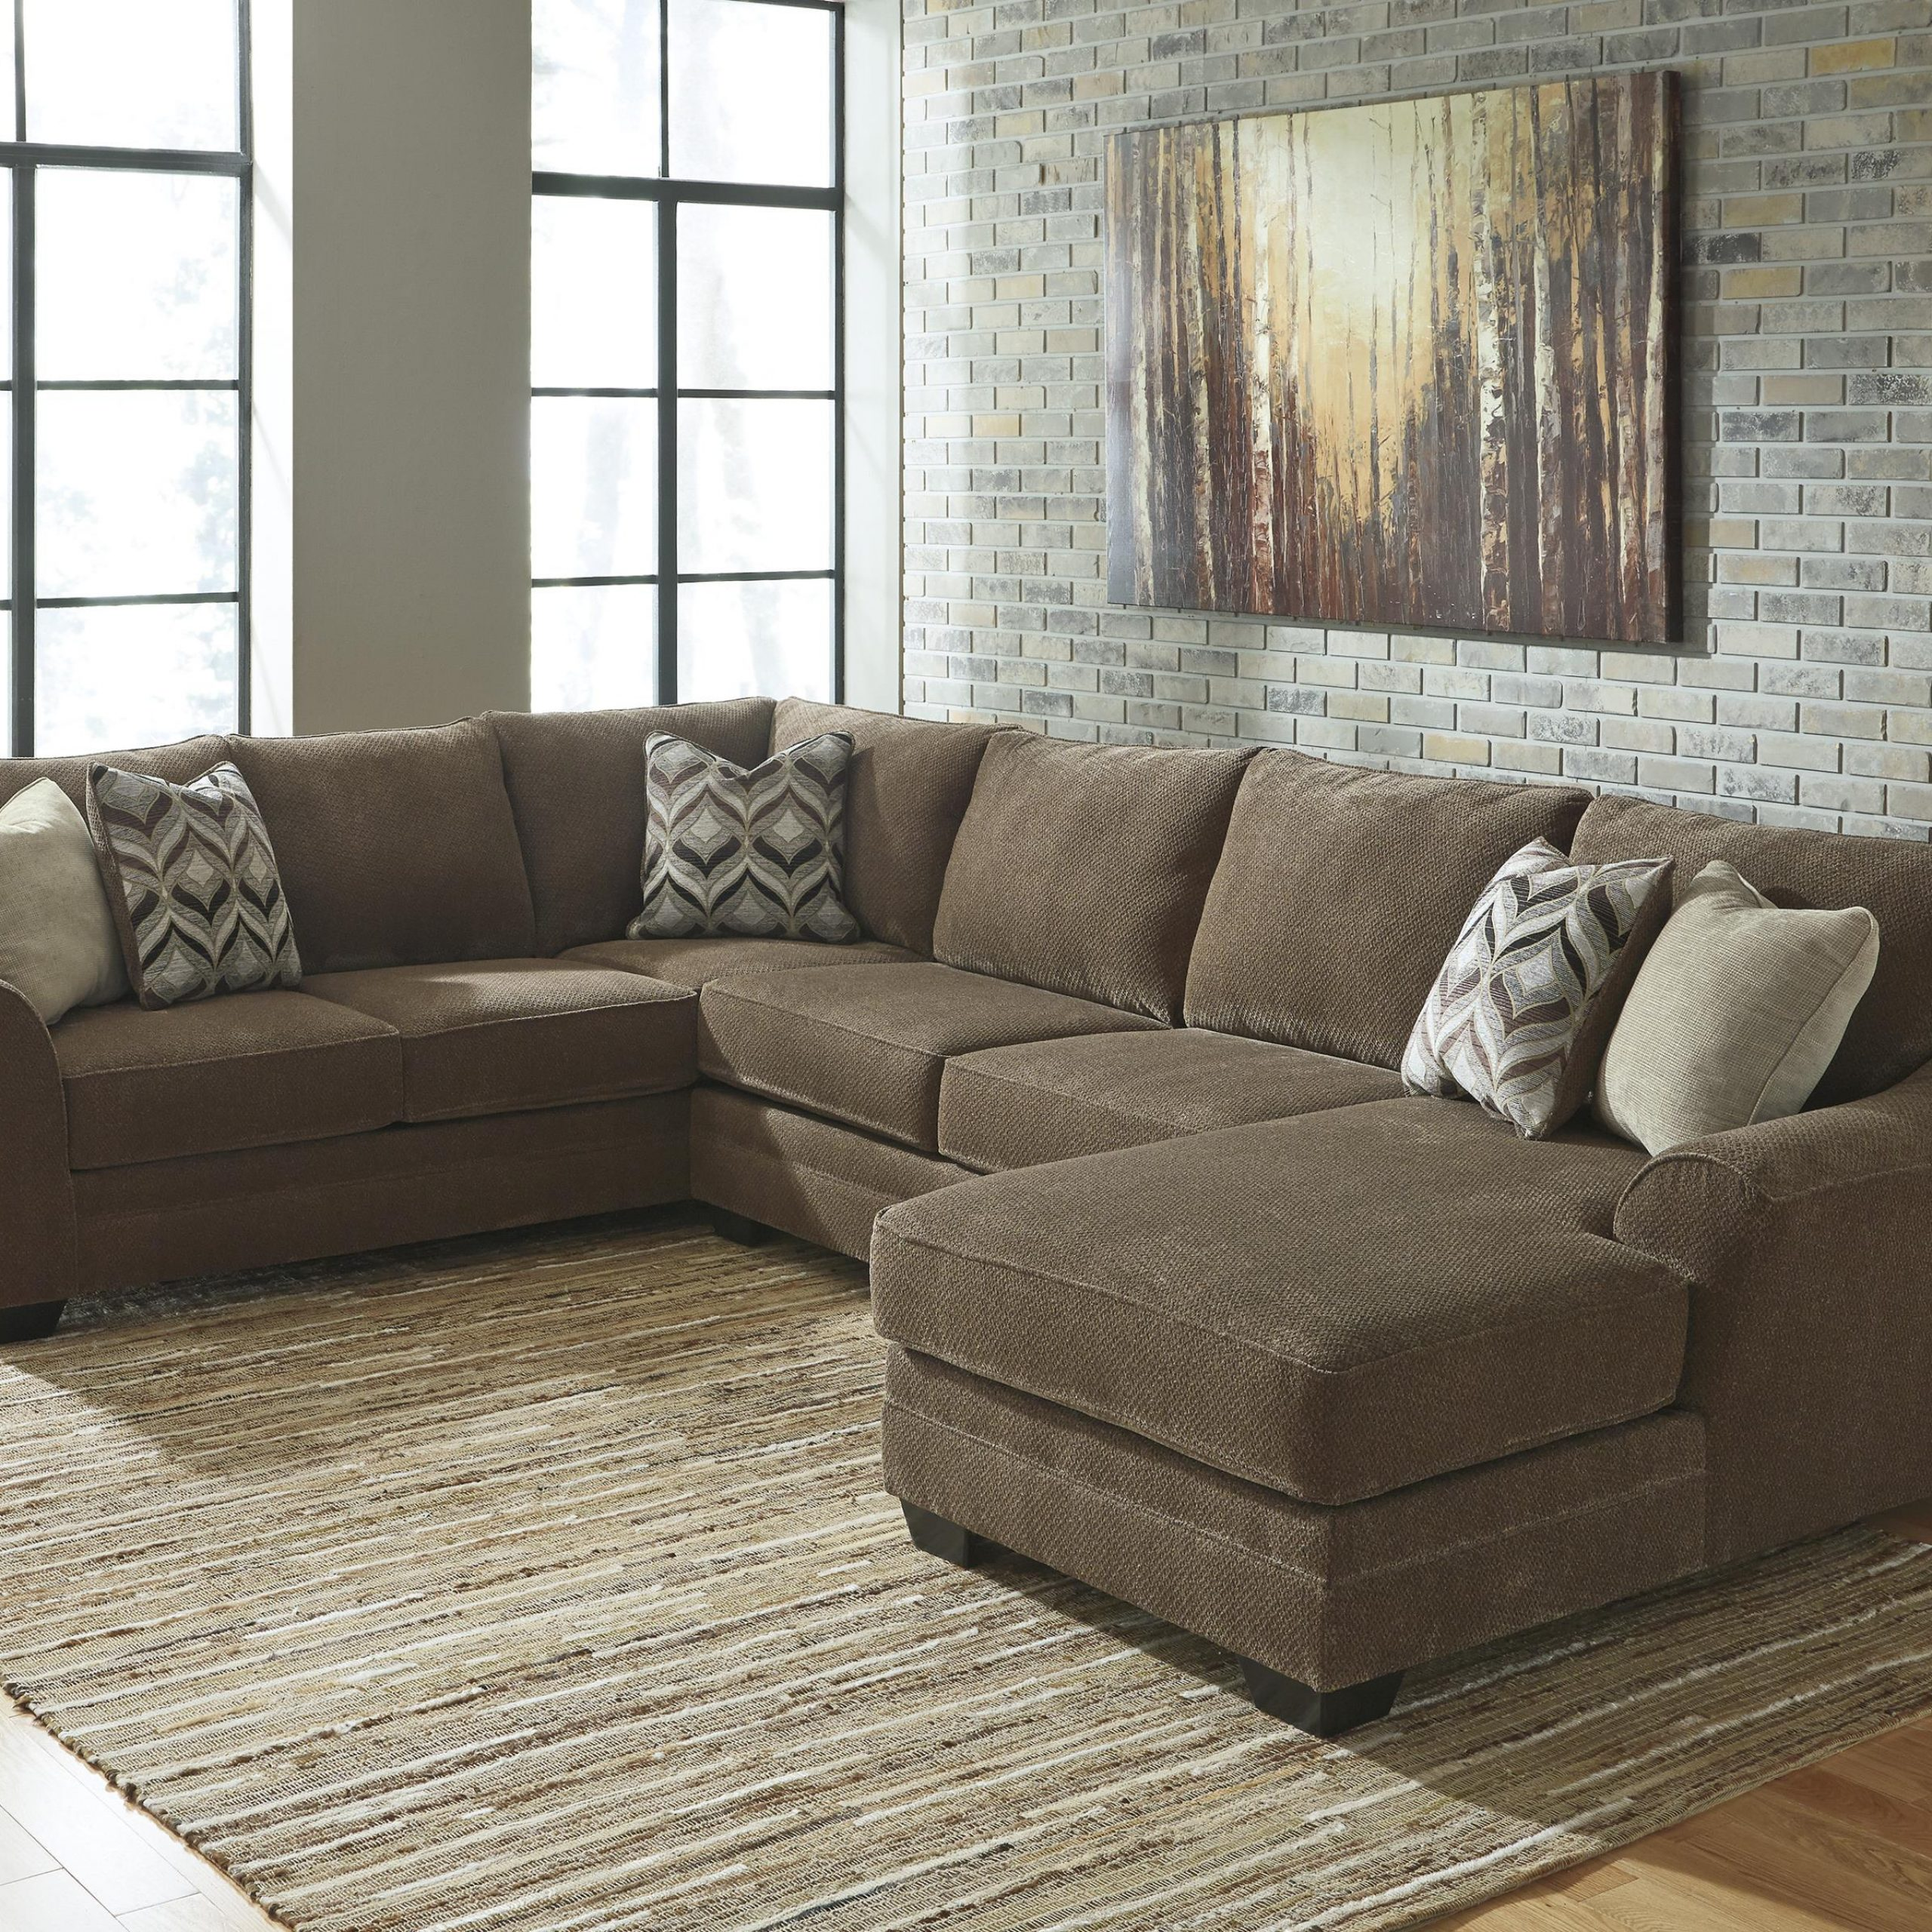 Benchcraft Justyna Contemporary 3 Piece Sectional With With 3Pc Polyfiber Sectional Sofas (View 3 of 15)